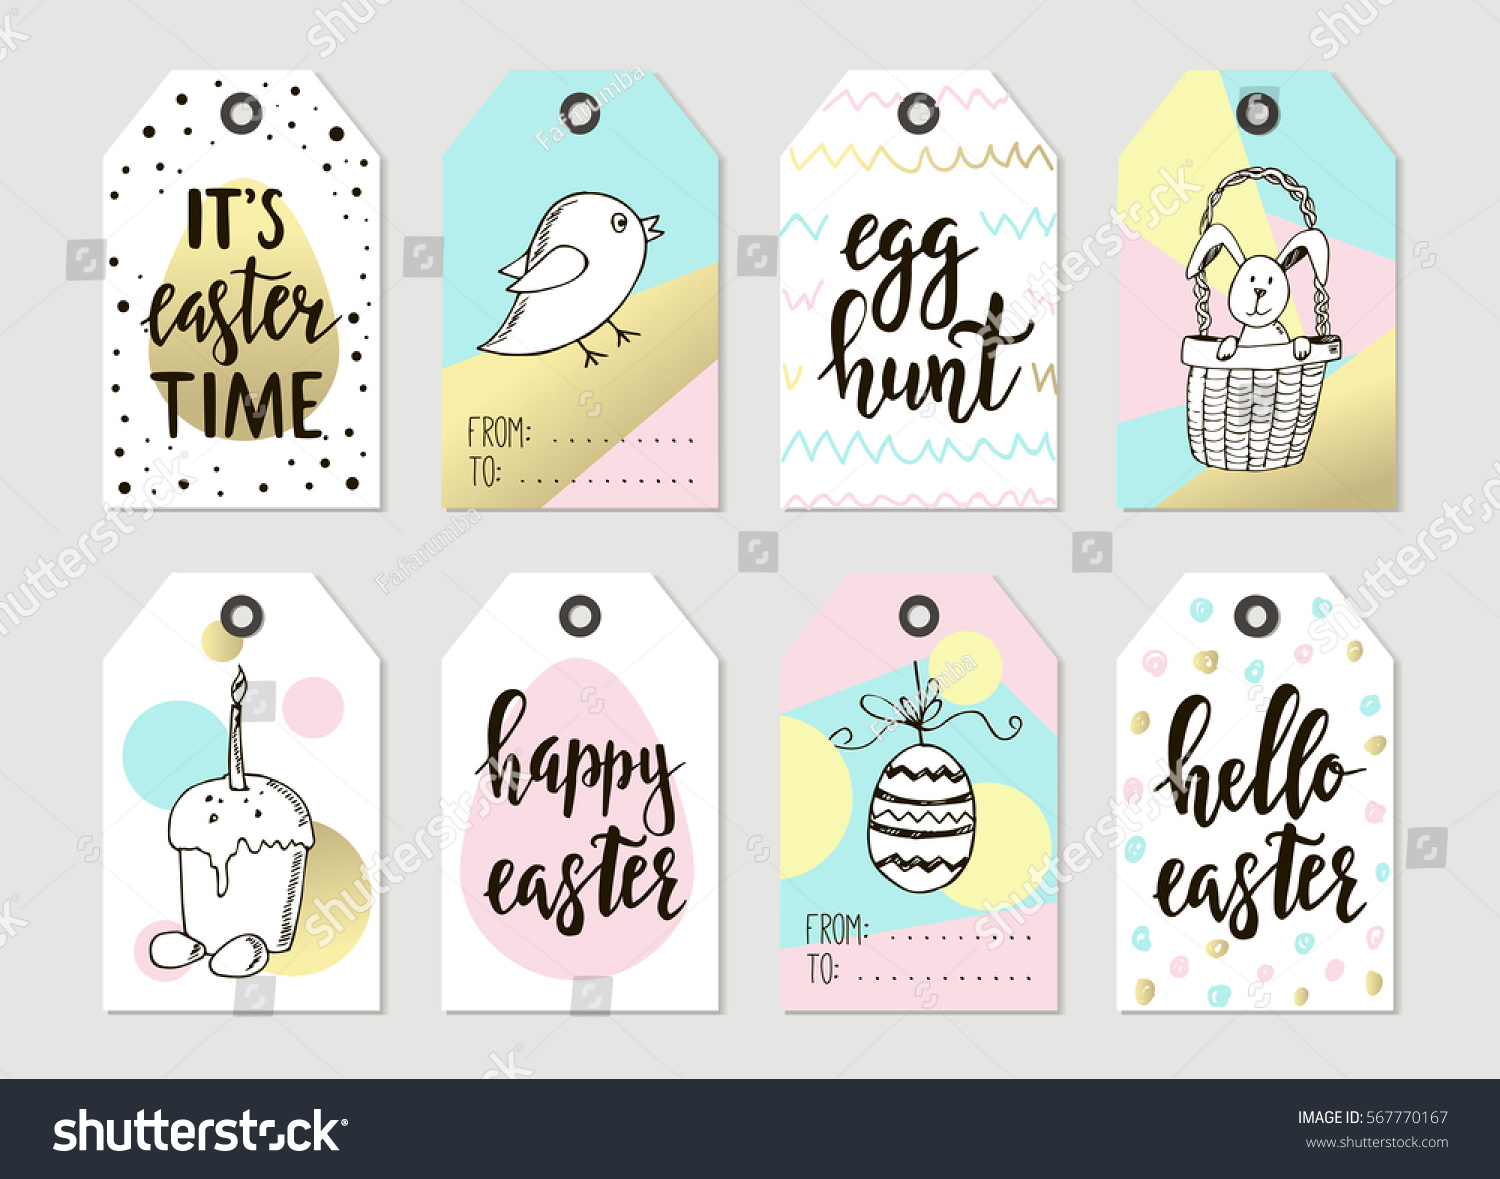 Religious easter gift tags gallery gift and gift ideas sample happy easter gift cards choice image gift and gift ideas sample set happy easter gift tags negle Gallery